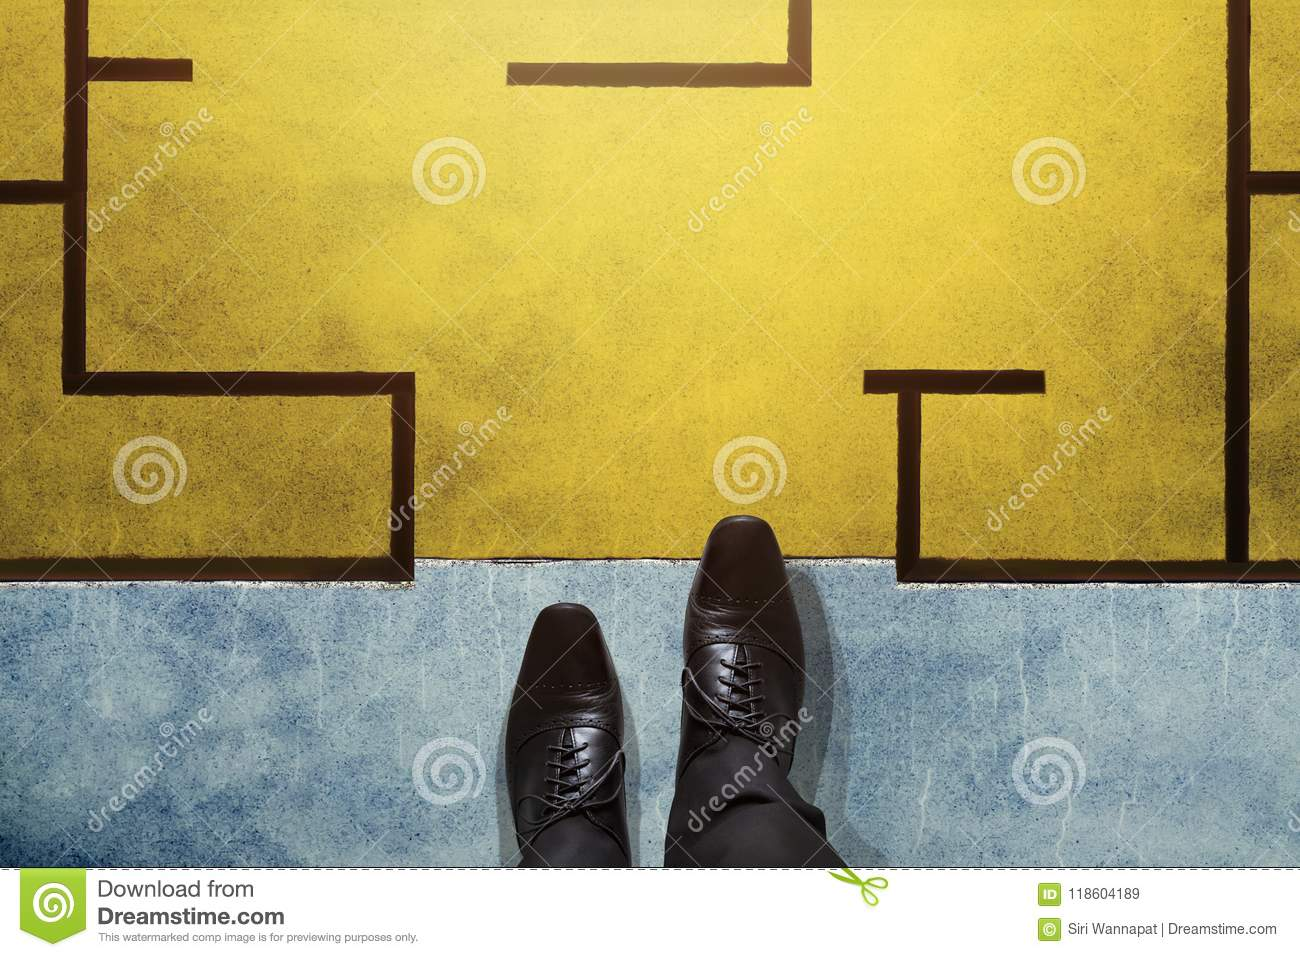 Challenge, Strategy and Leadership Concept. Top View of Business